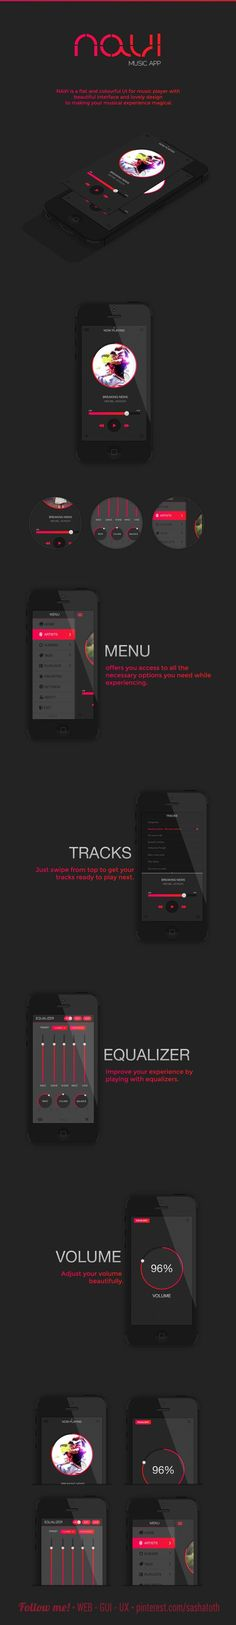 NAVI - Music App | NAVI is a flat and colourful UI for music player with  beautiful interface and lovely design  to making your musical experience magical. | Designer: Mansoor MJ: